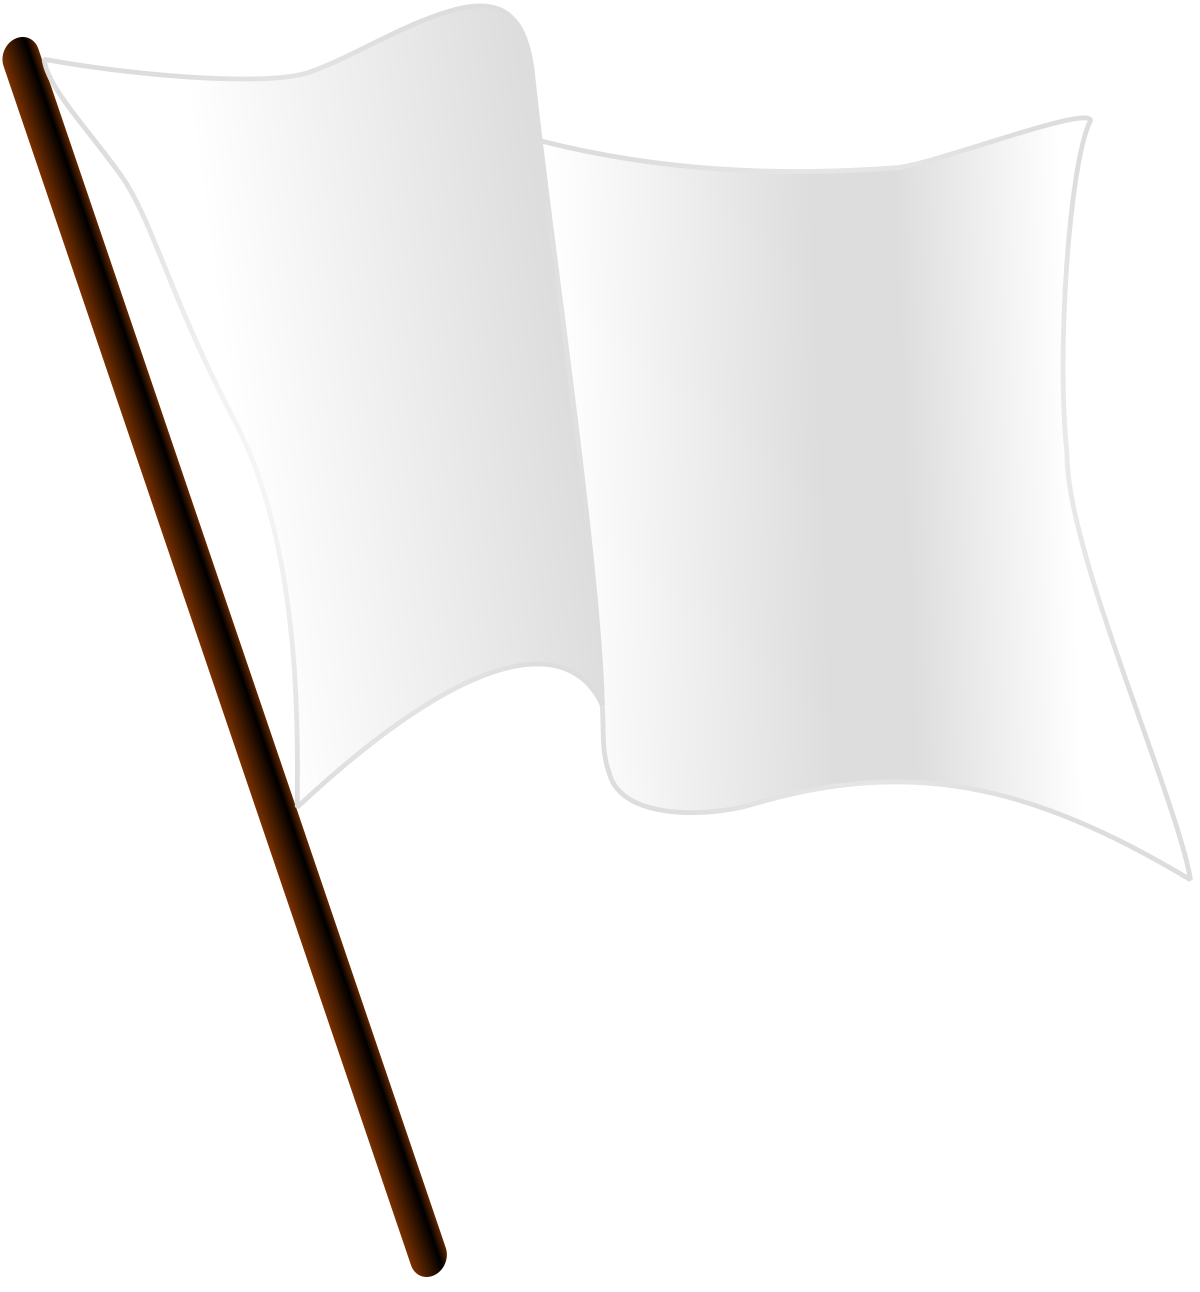 Svg flags gun. White flag wikipedia